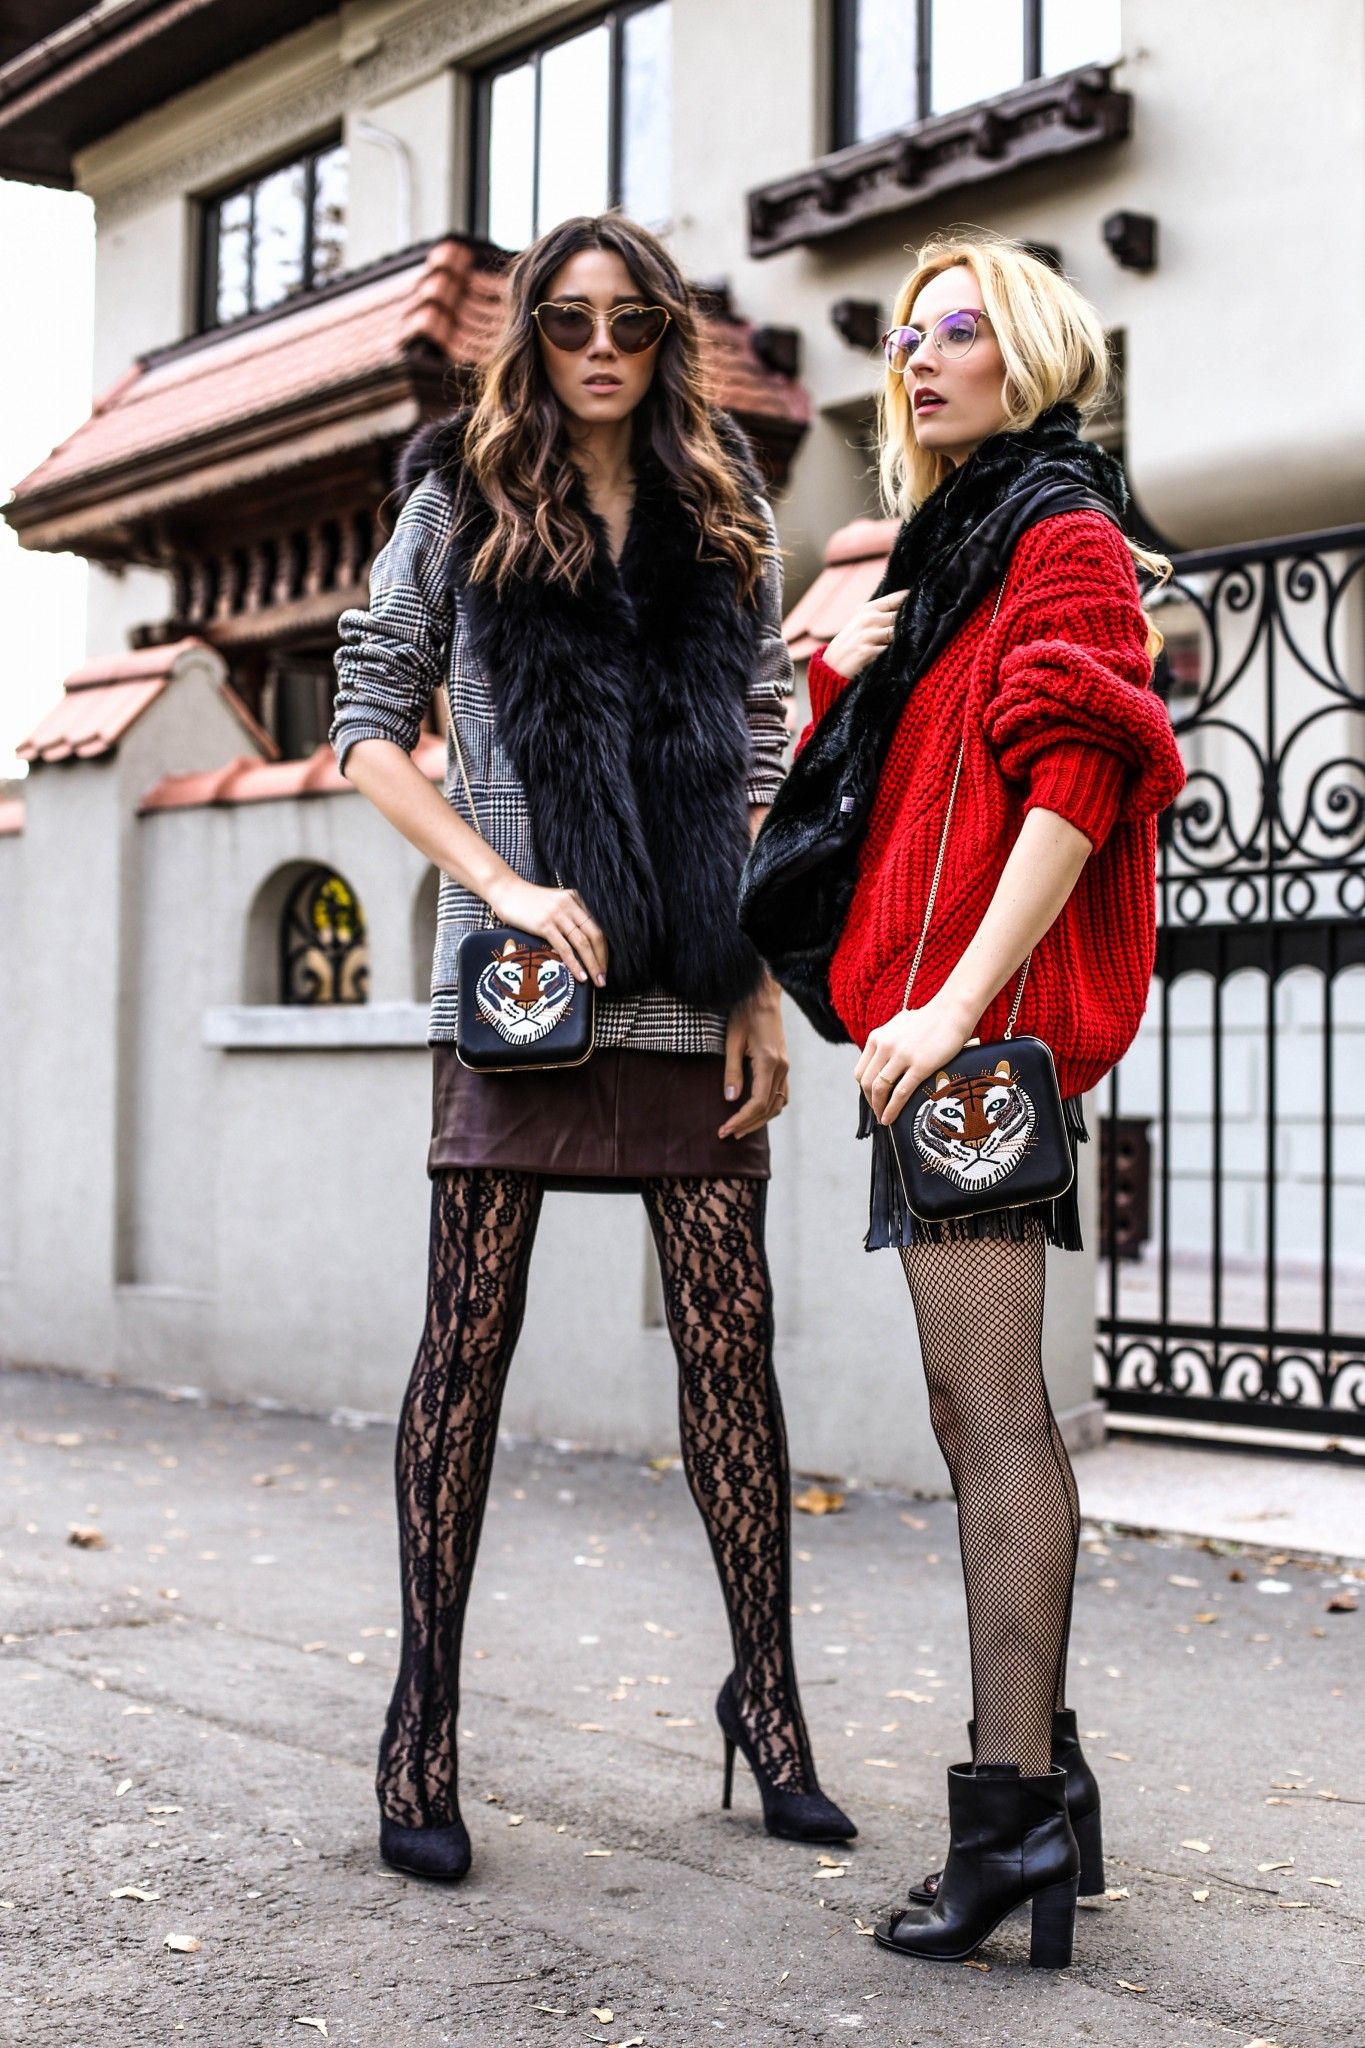 1black_friday_fabulous-muses_bibloo_winter_shopping